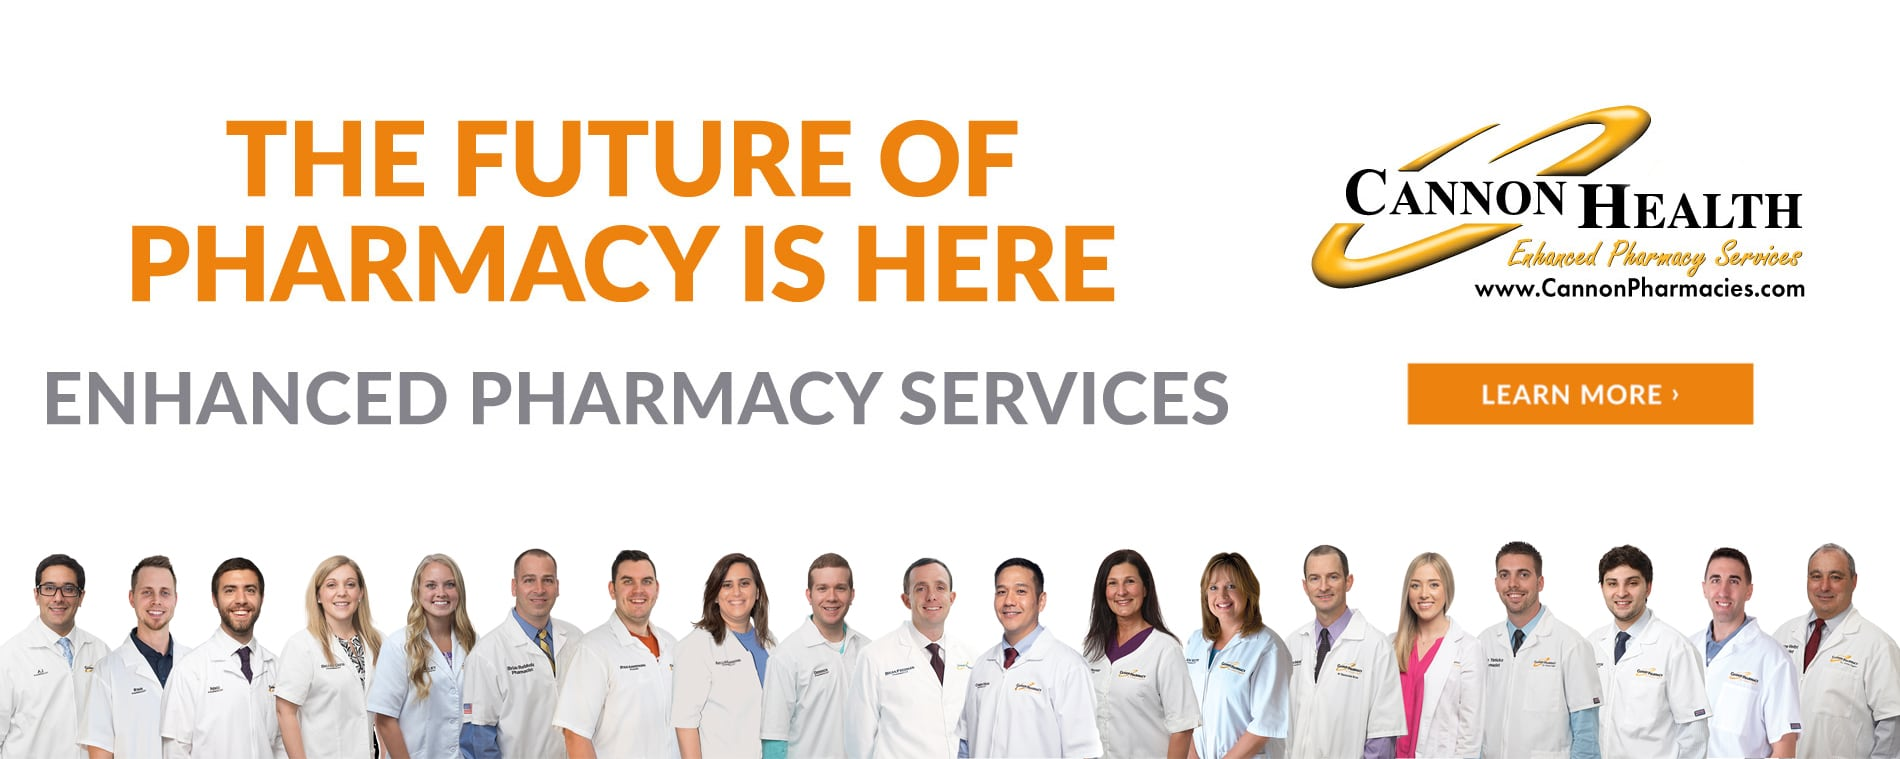 the future of pharmacy is here